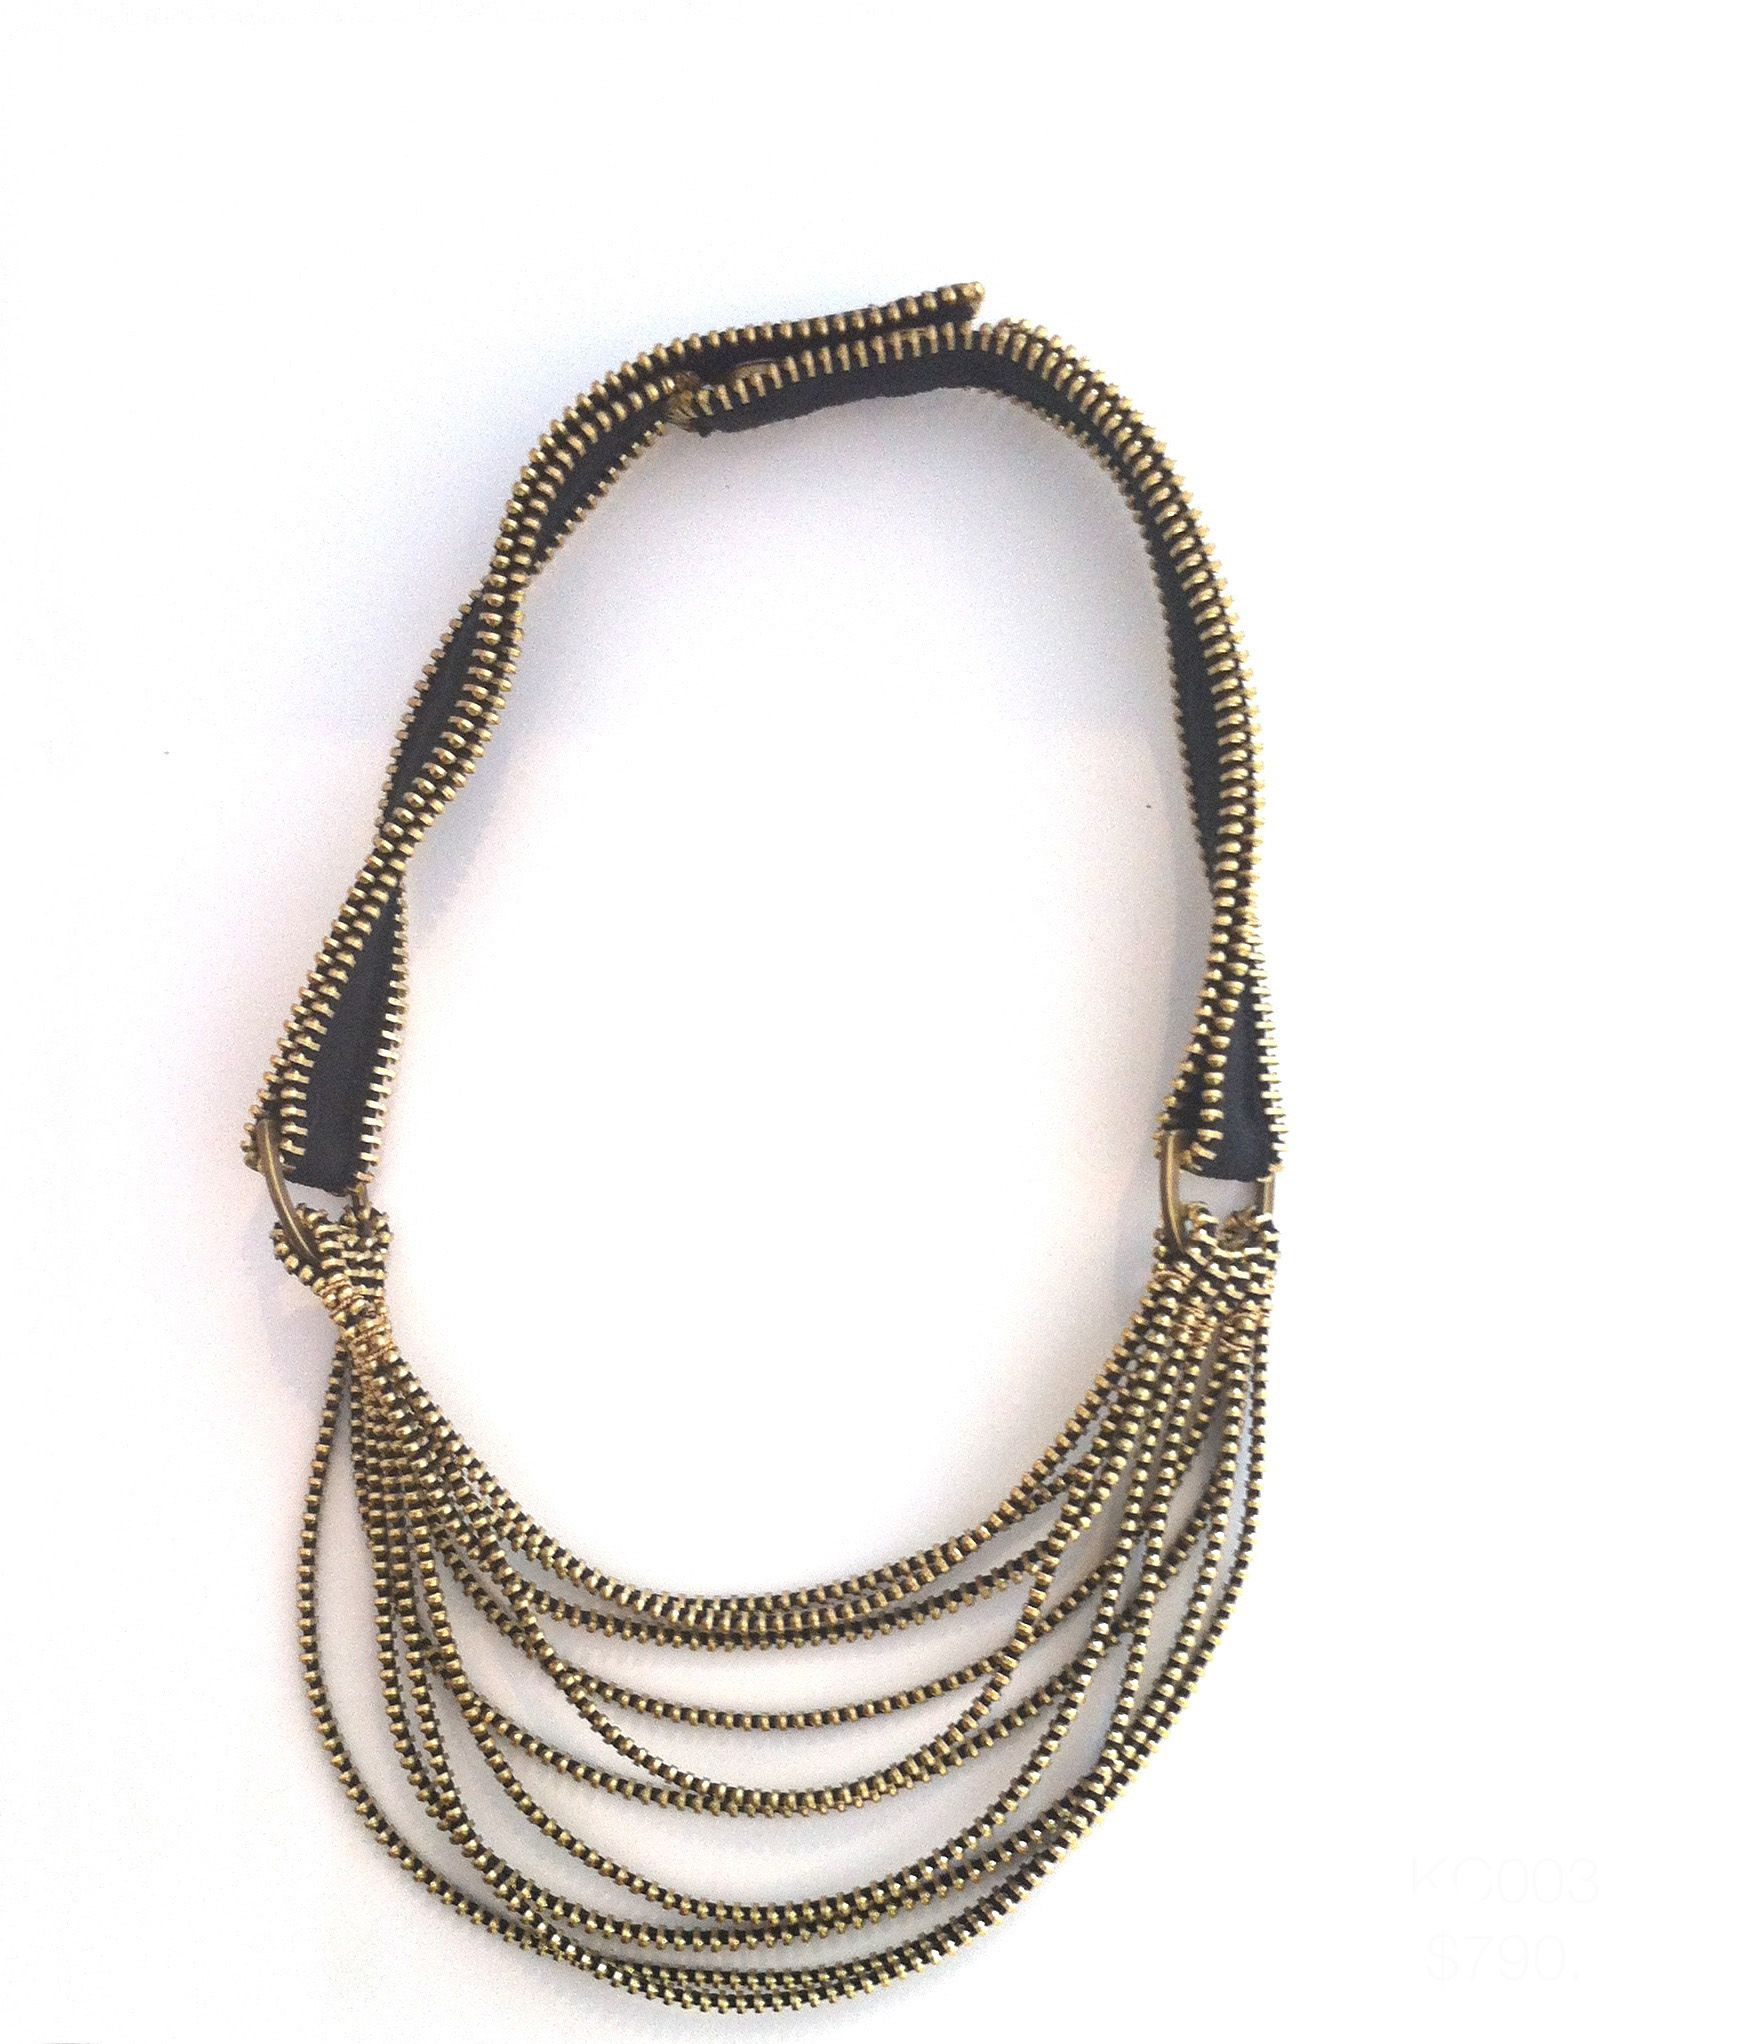 Introducing our newest artist at Gallery Lulo, Kate Cusack! Tress VII necklace, made from black and brass zippers. Kate Cusack for Gallery Lulo.